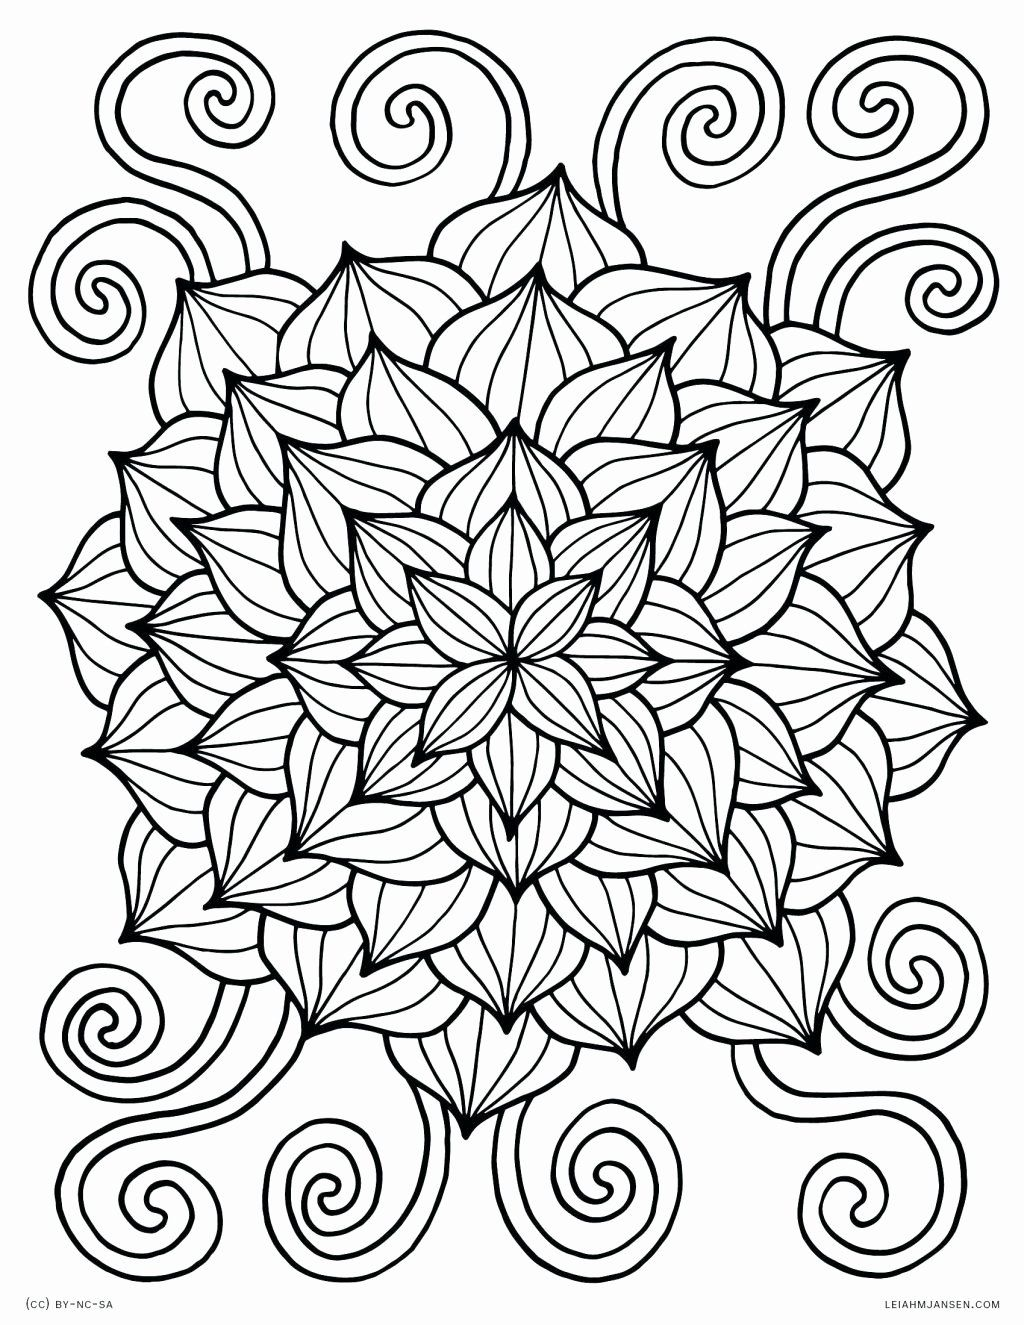 Flower Coloring Pages For Adults Printable Beautiful Lets Coloring Flower Coloring Sheets In 2020 Abstract Coloring Pages Butterfly Coloring Page Spring Coloring Pages [ 1325 x 1024 Pixel ]